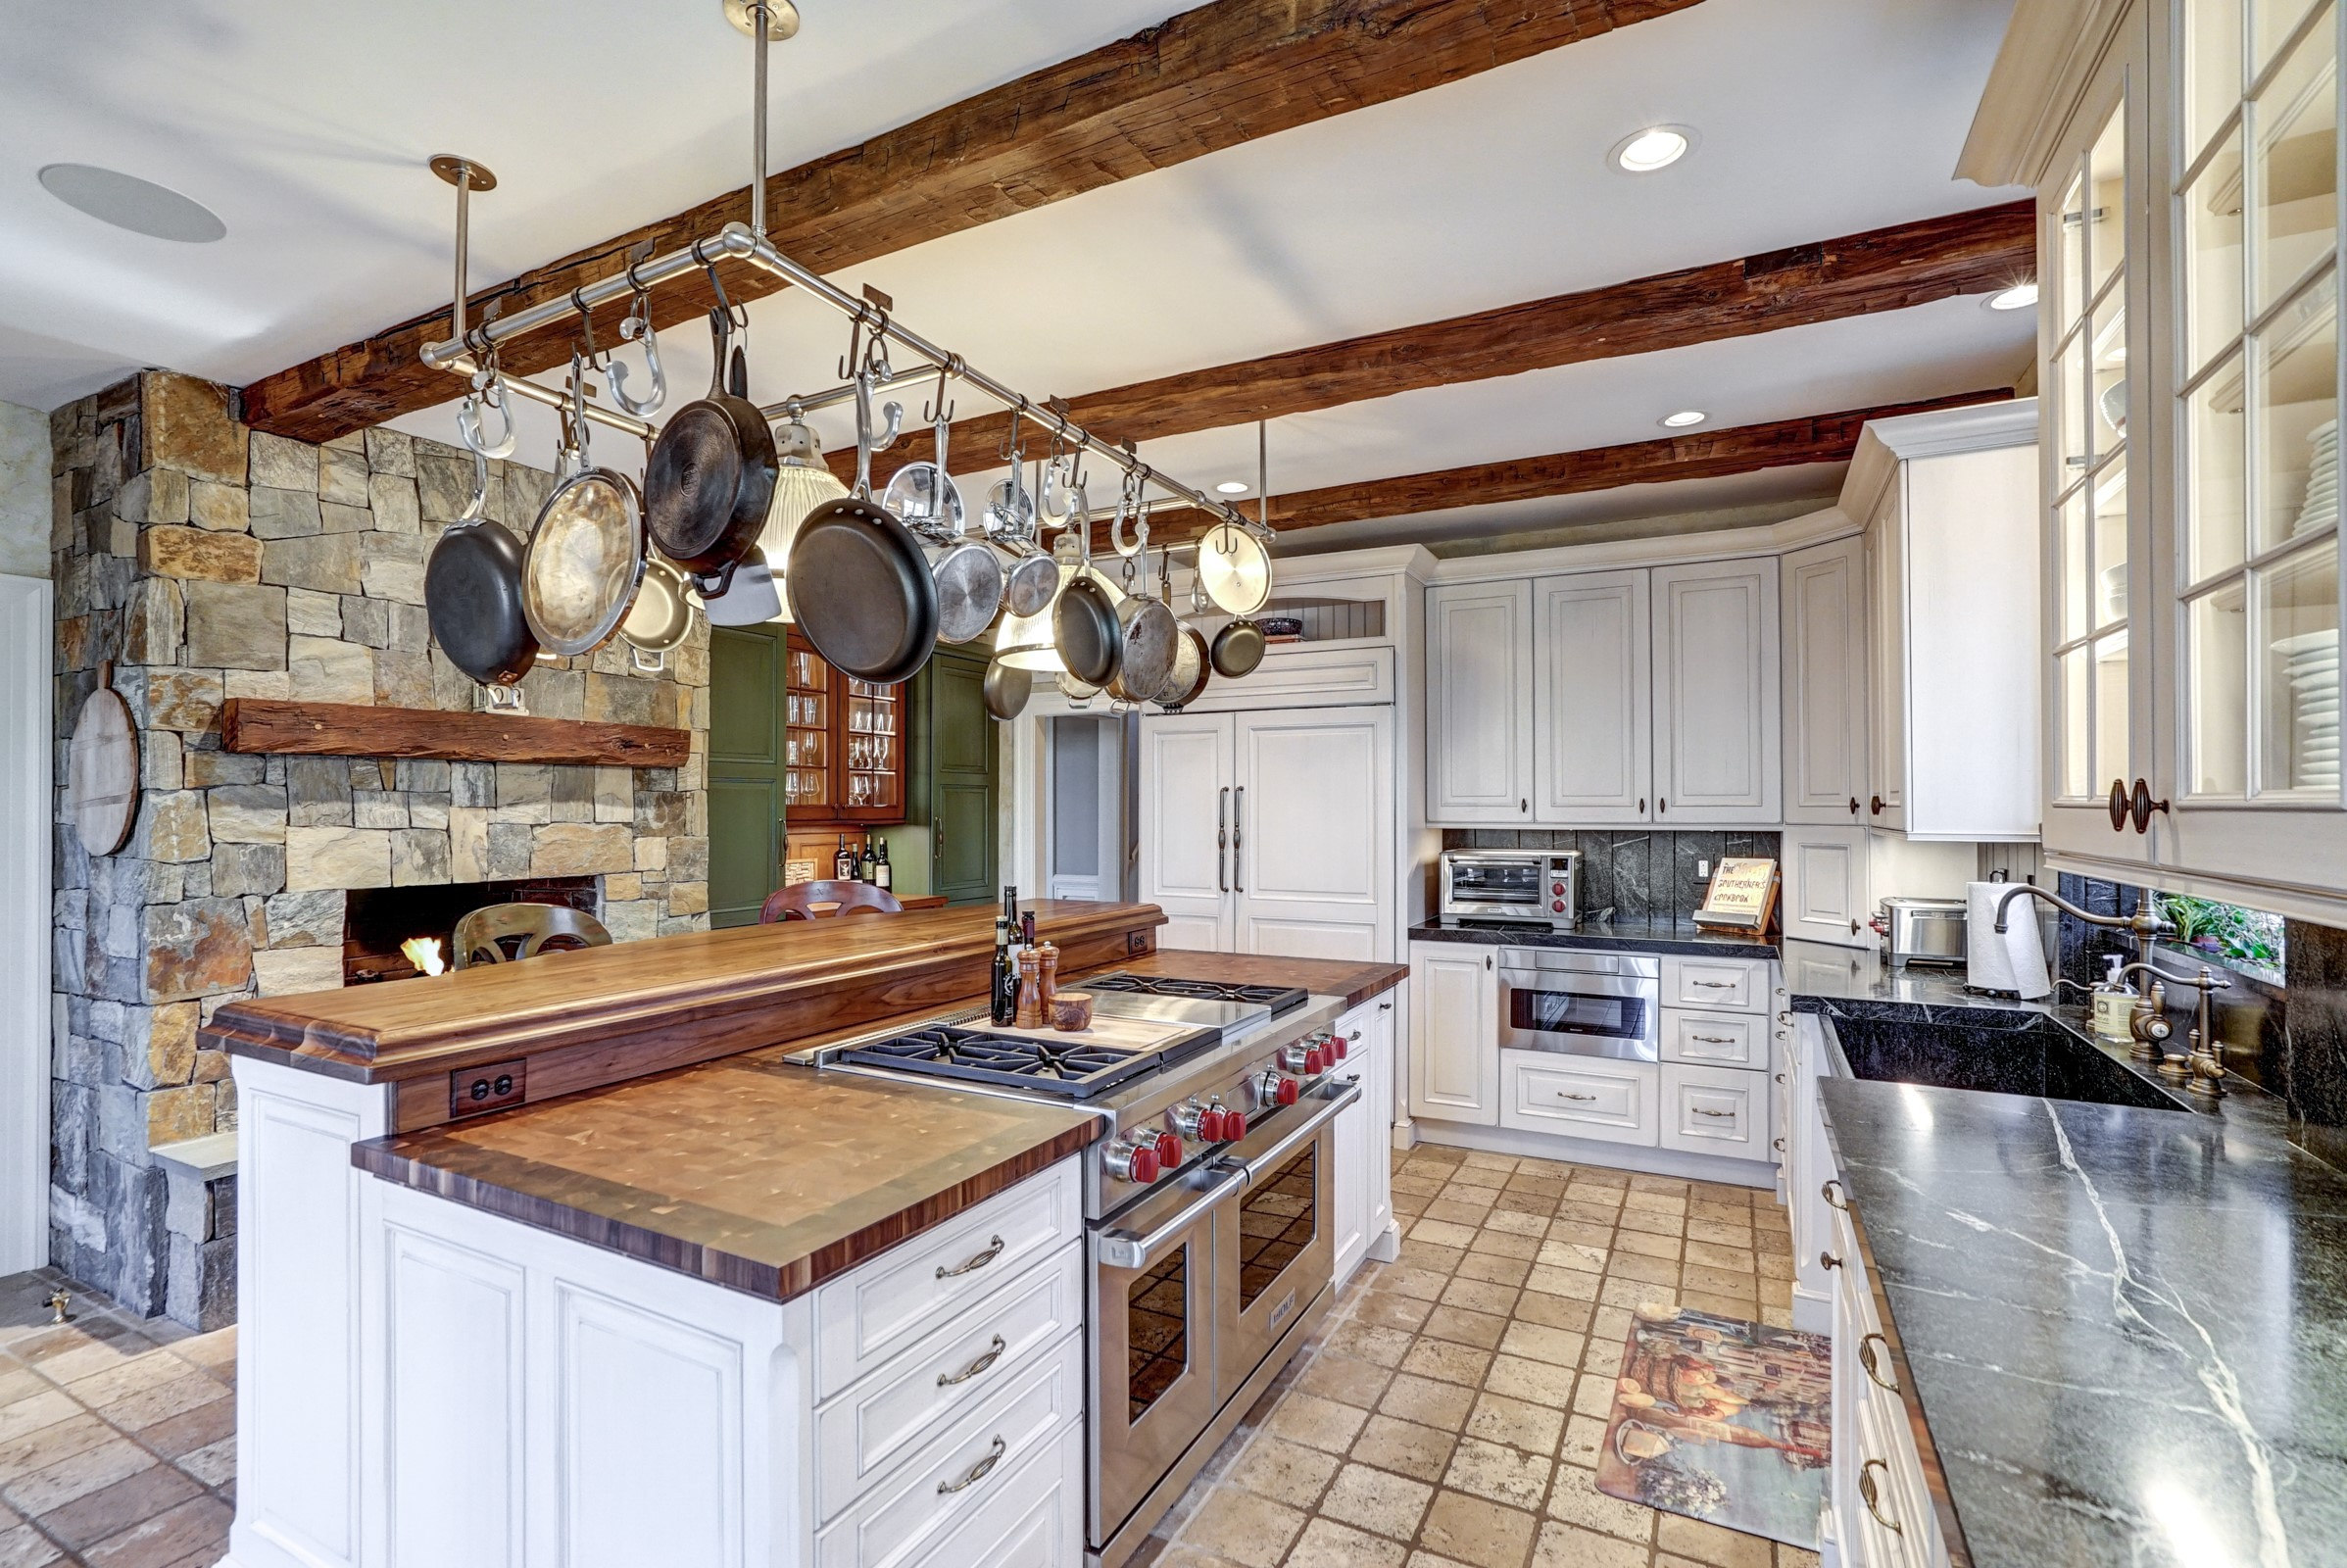 Custom Walnut Wood Backsplash Connects the Upper and Lower Levels of the Kitchen Island